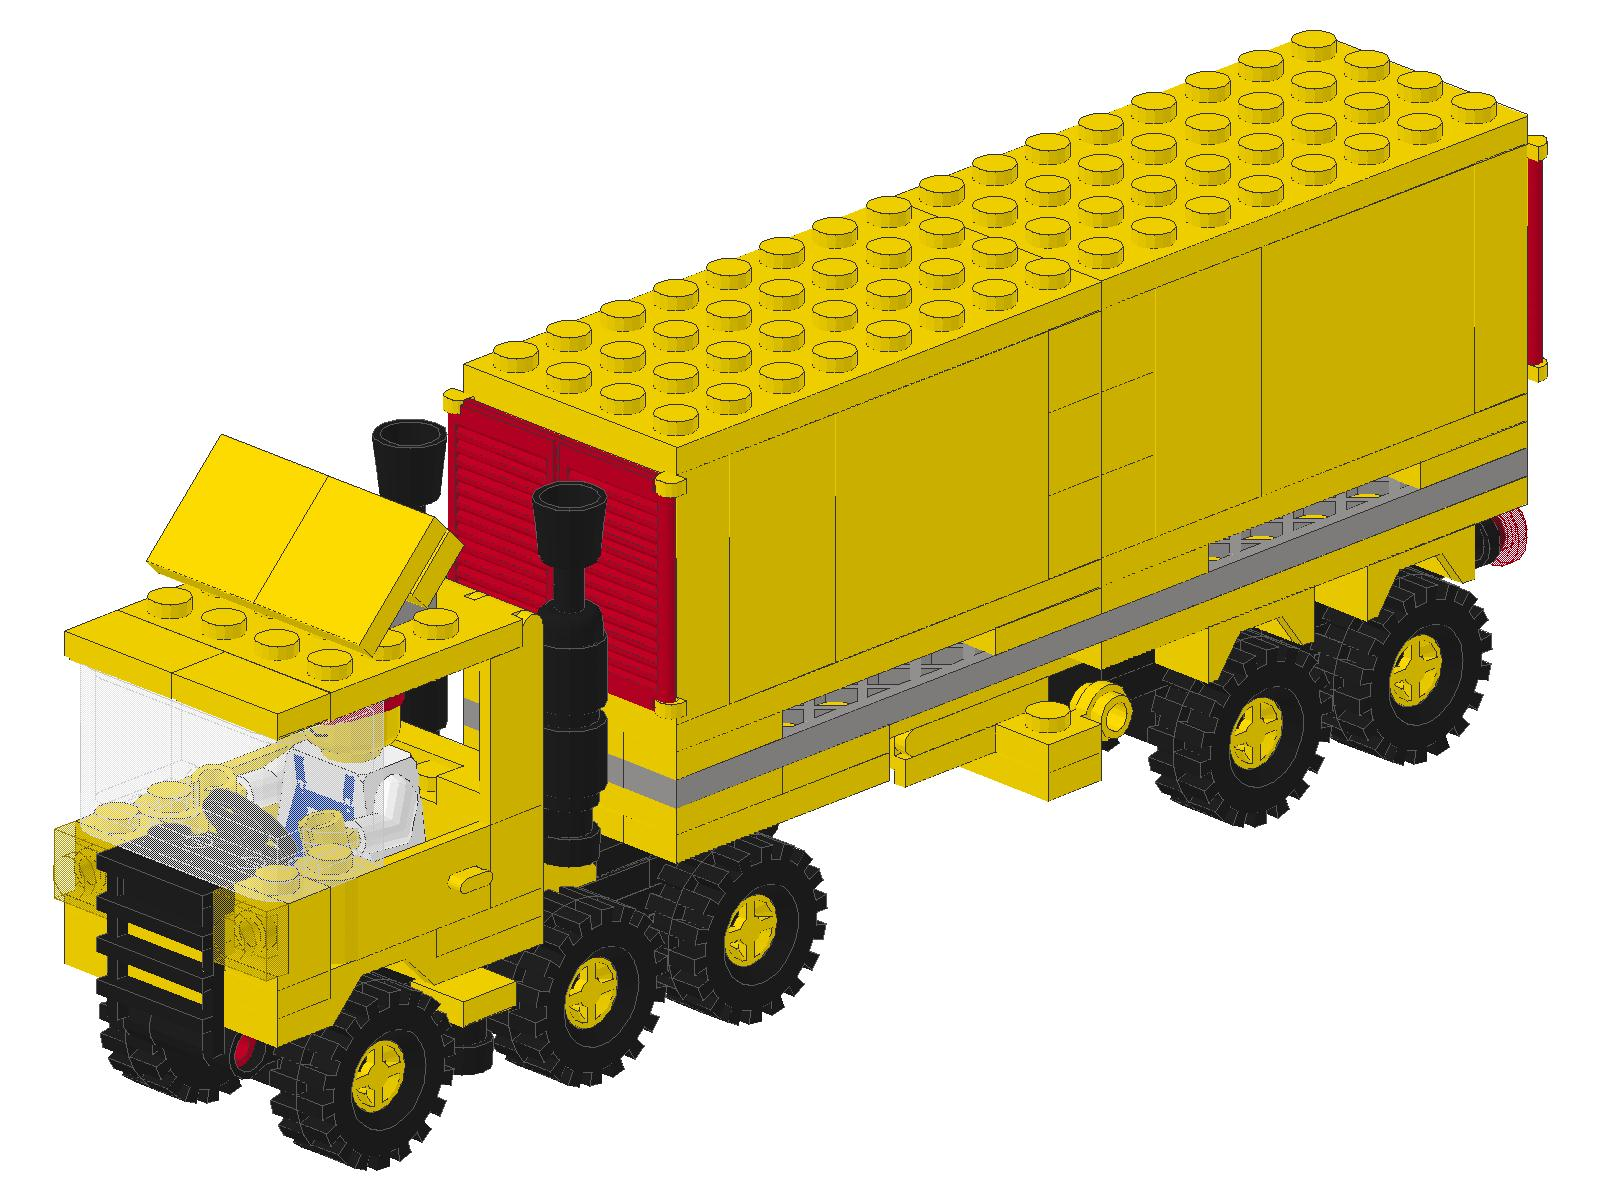 1525_container_lorry.jpg